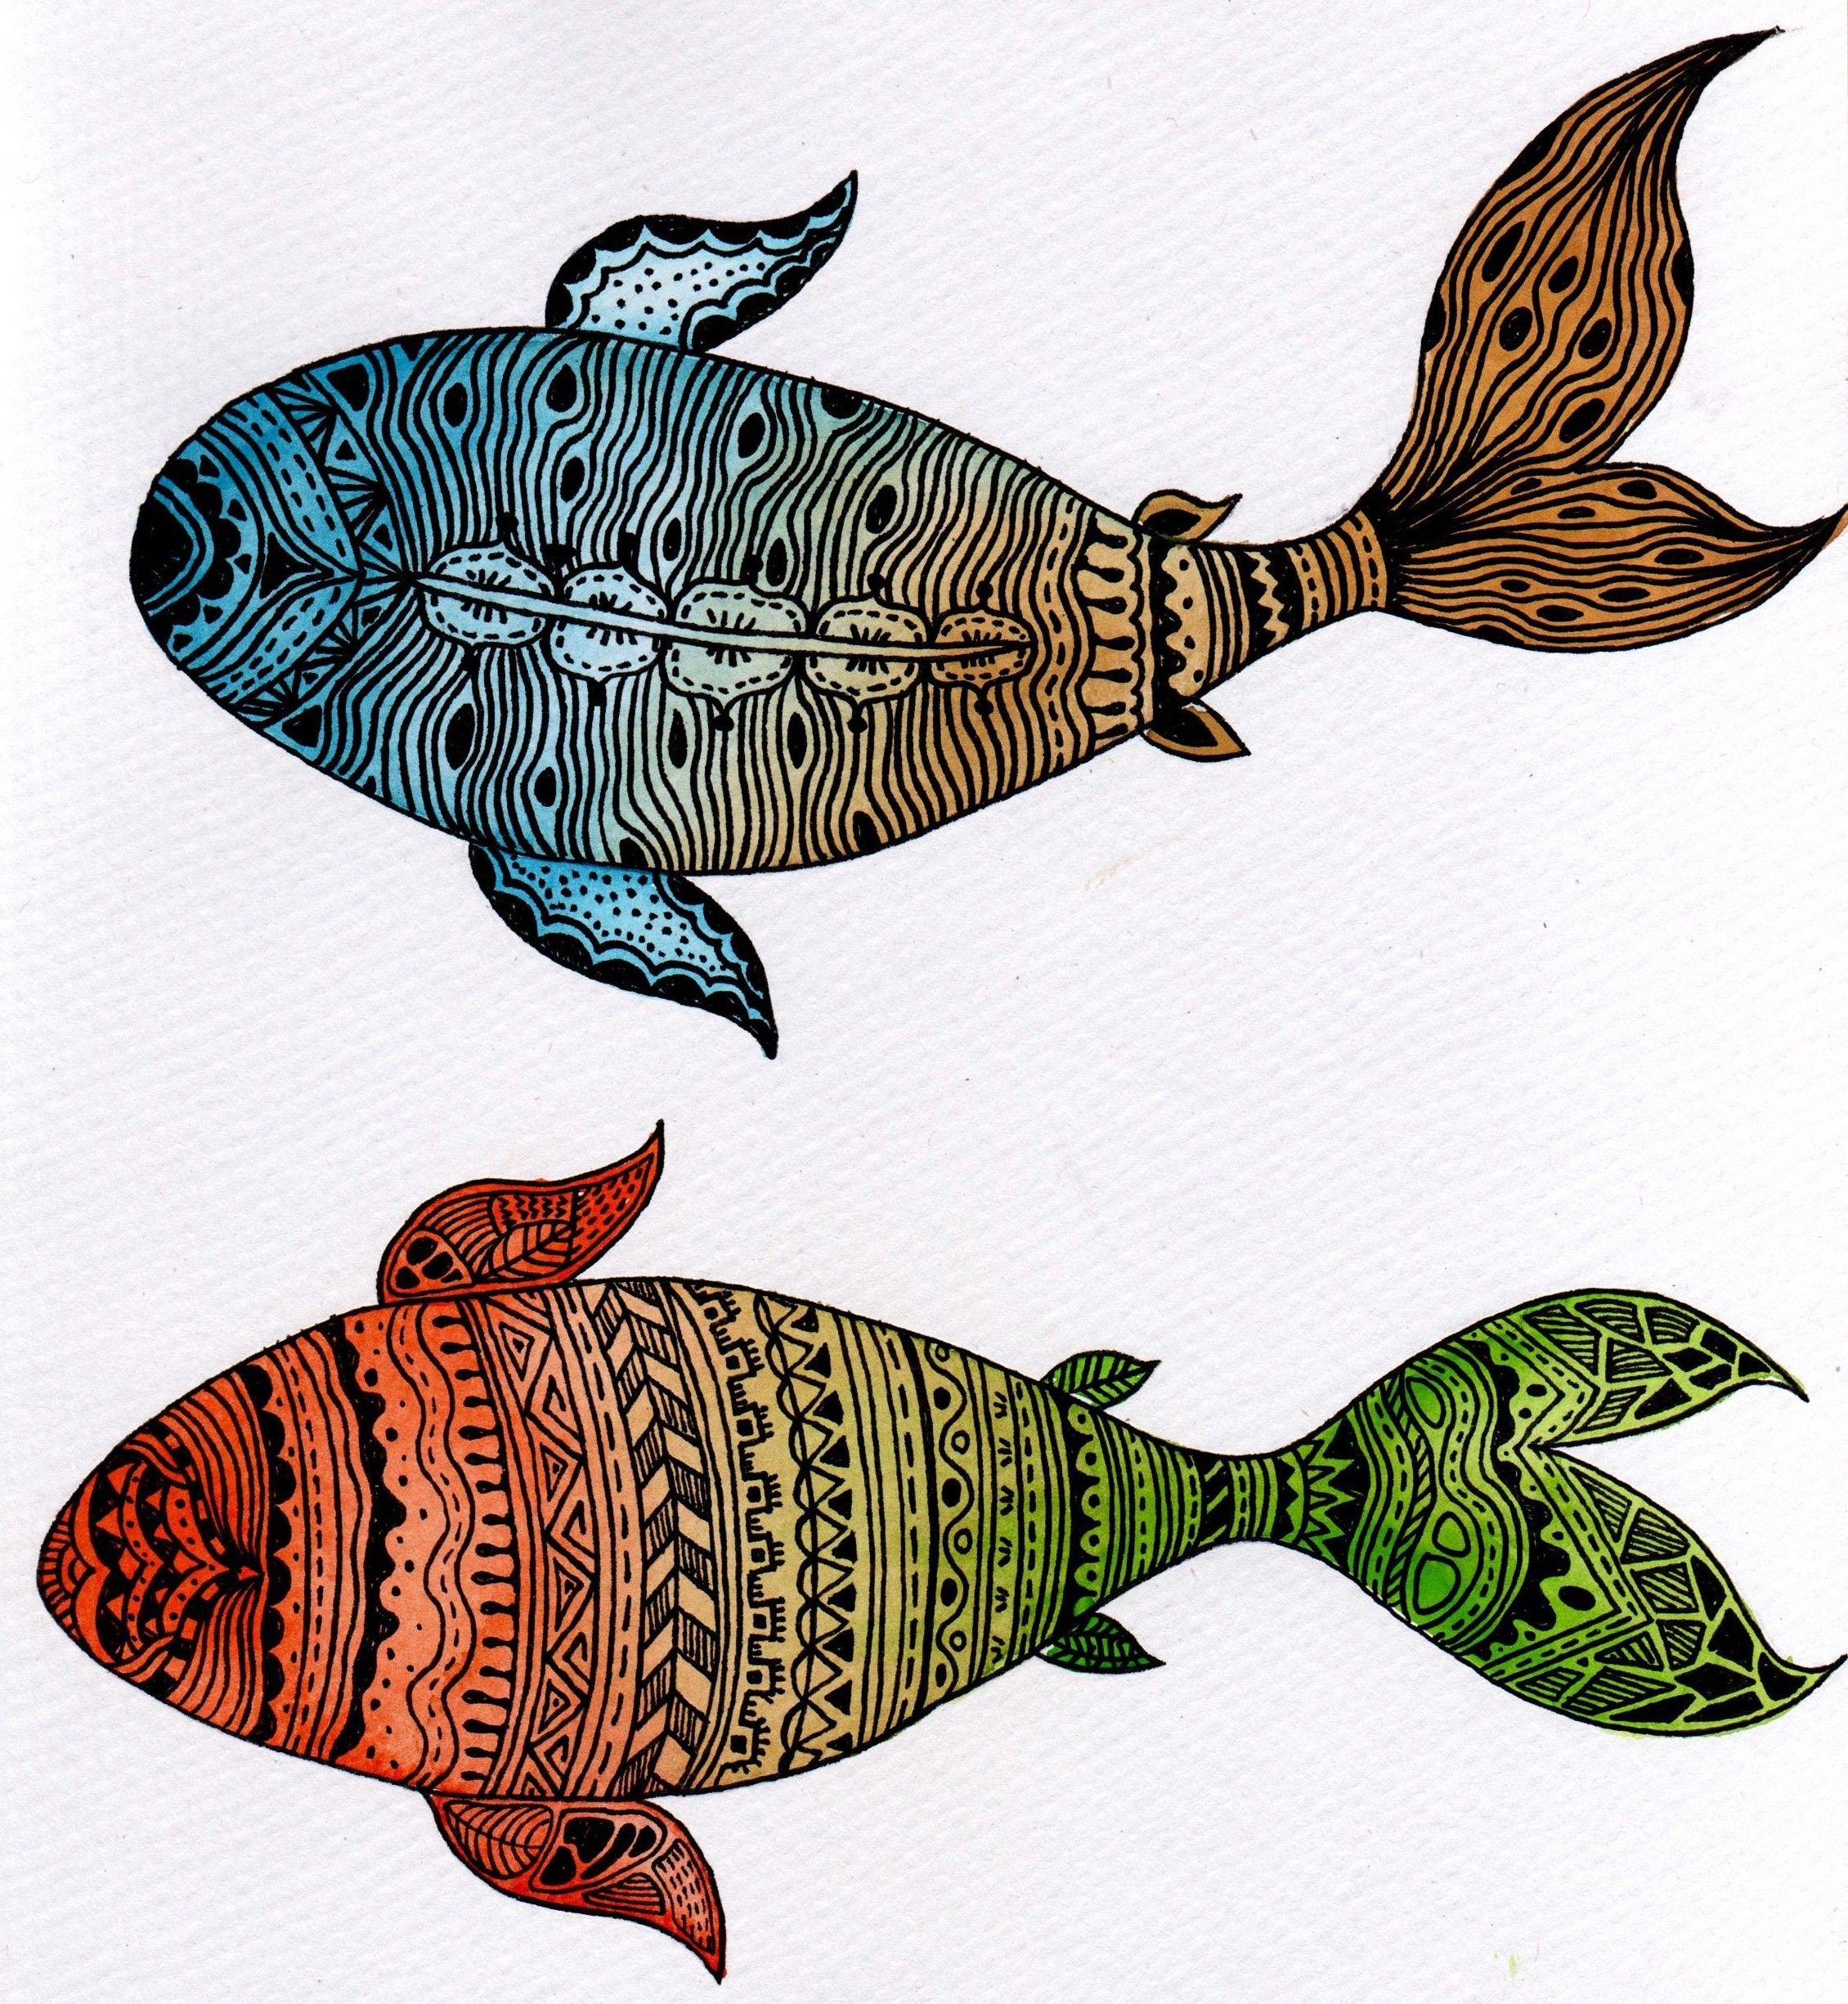 Koi- inspired by American Indian pattern